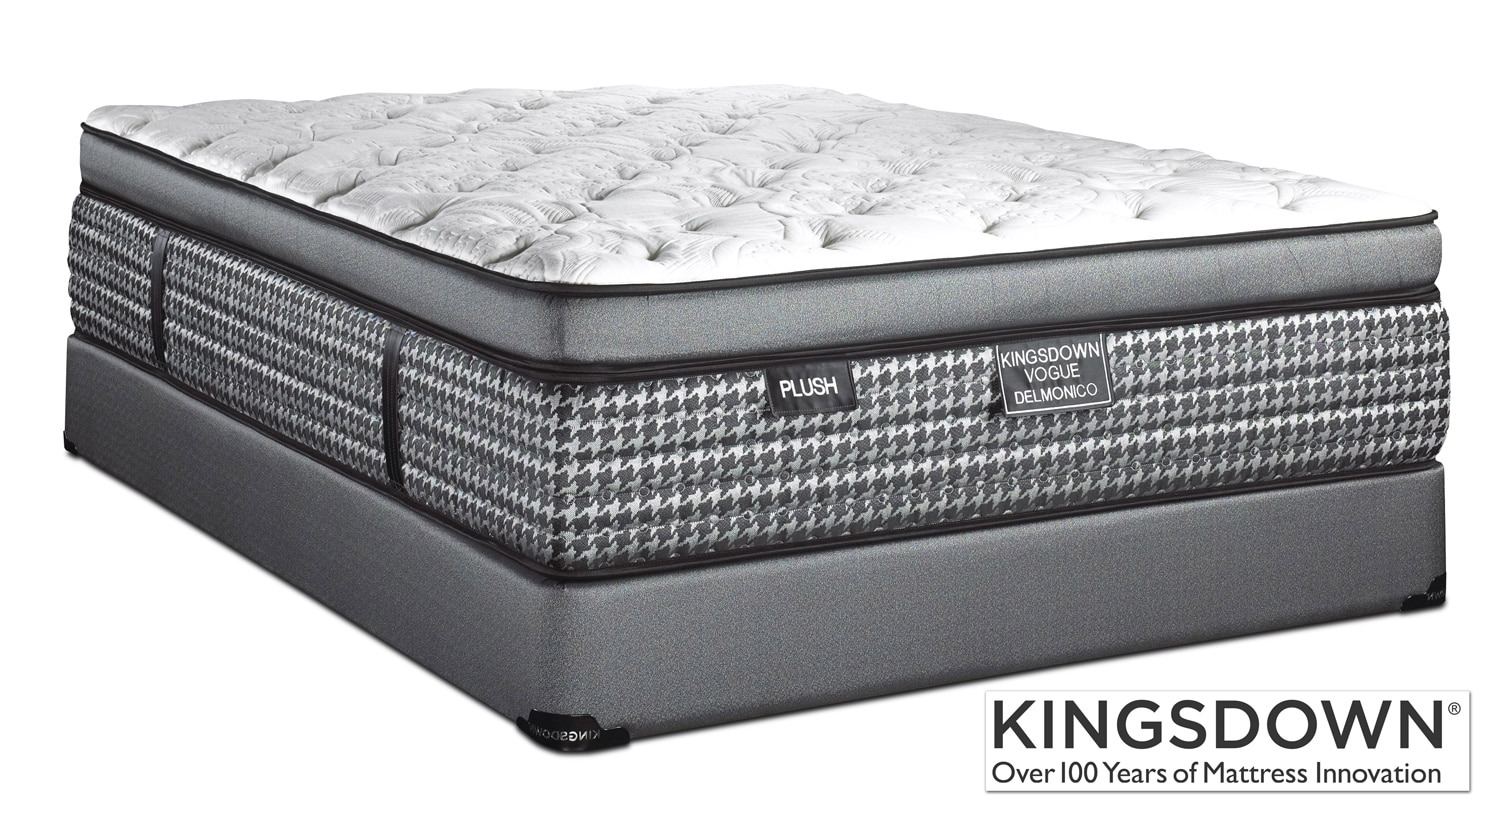 Kingsdown Delmonico Plush King Mattress/Boxspring Set